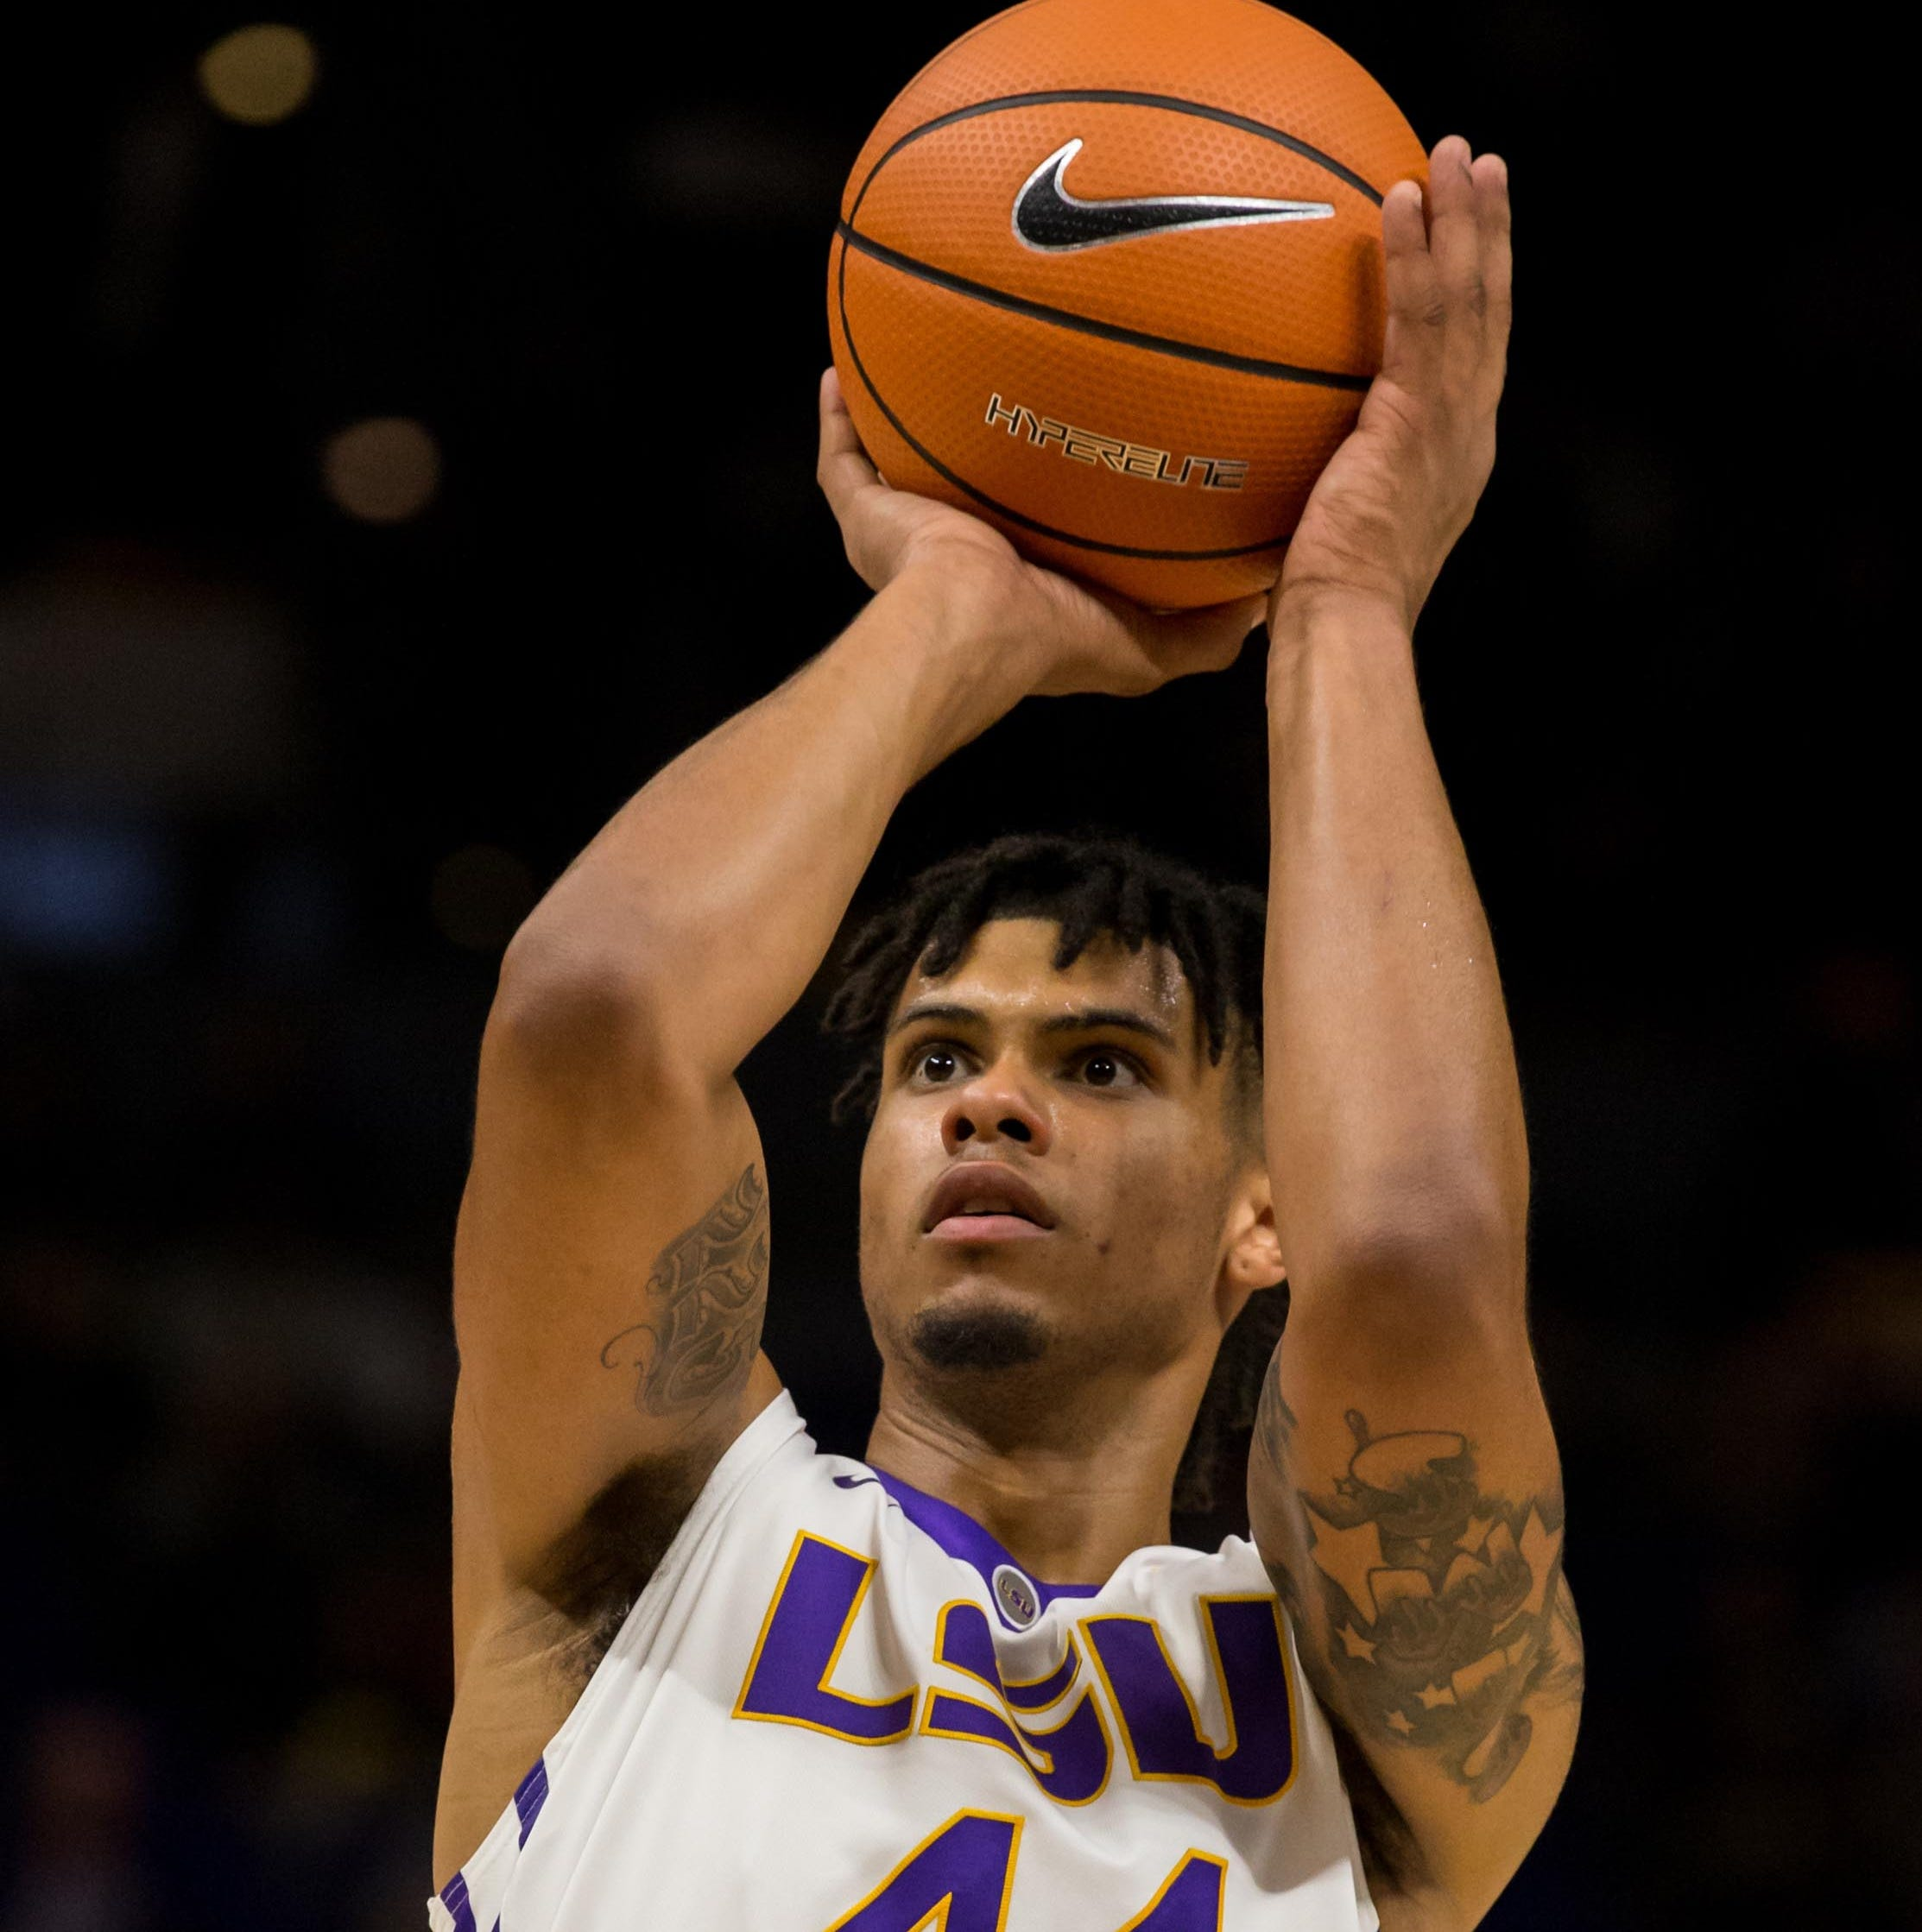 LSU basketball player Wayde Sims, 20, dies of gunshot wound